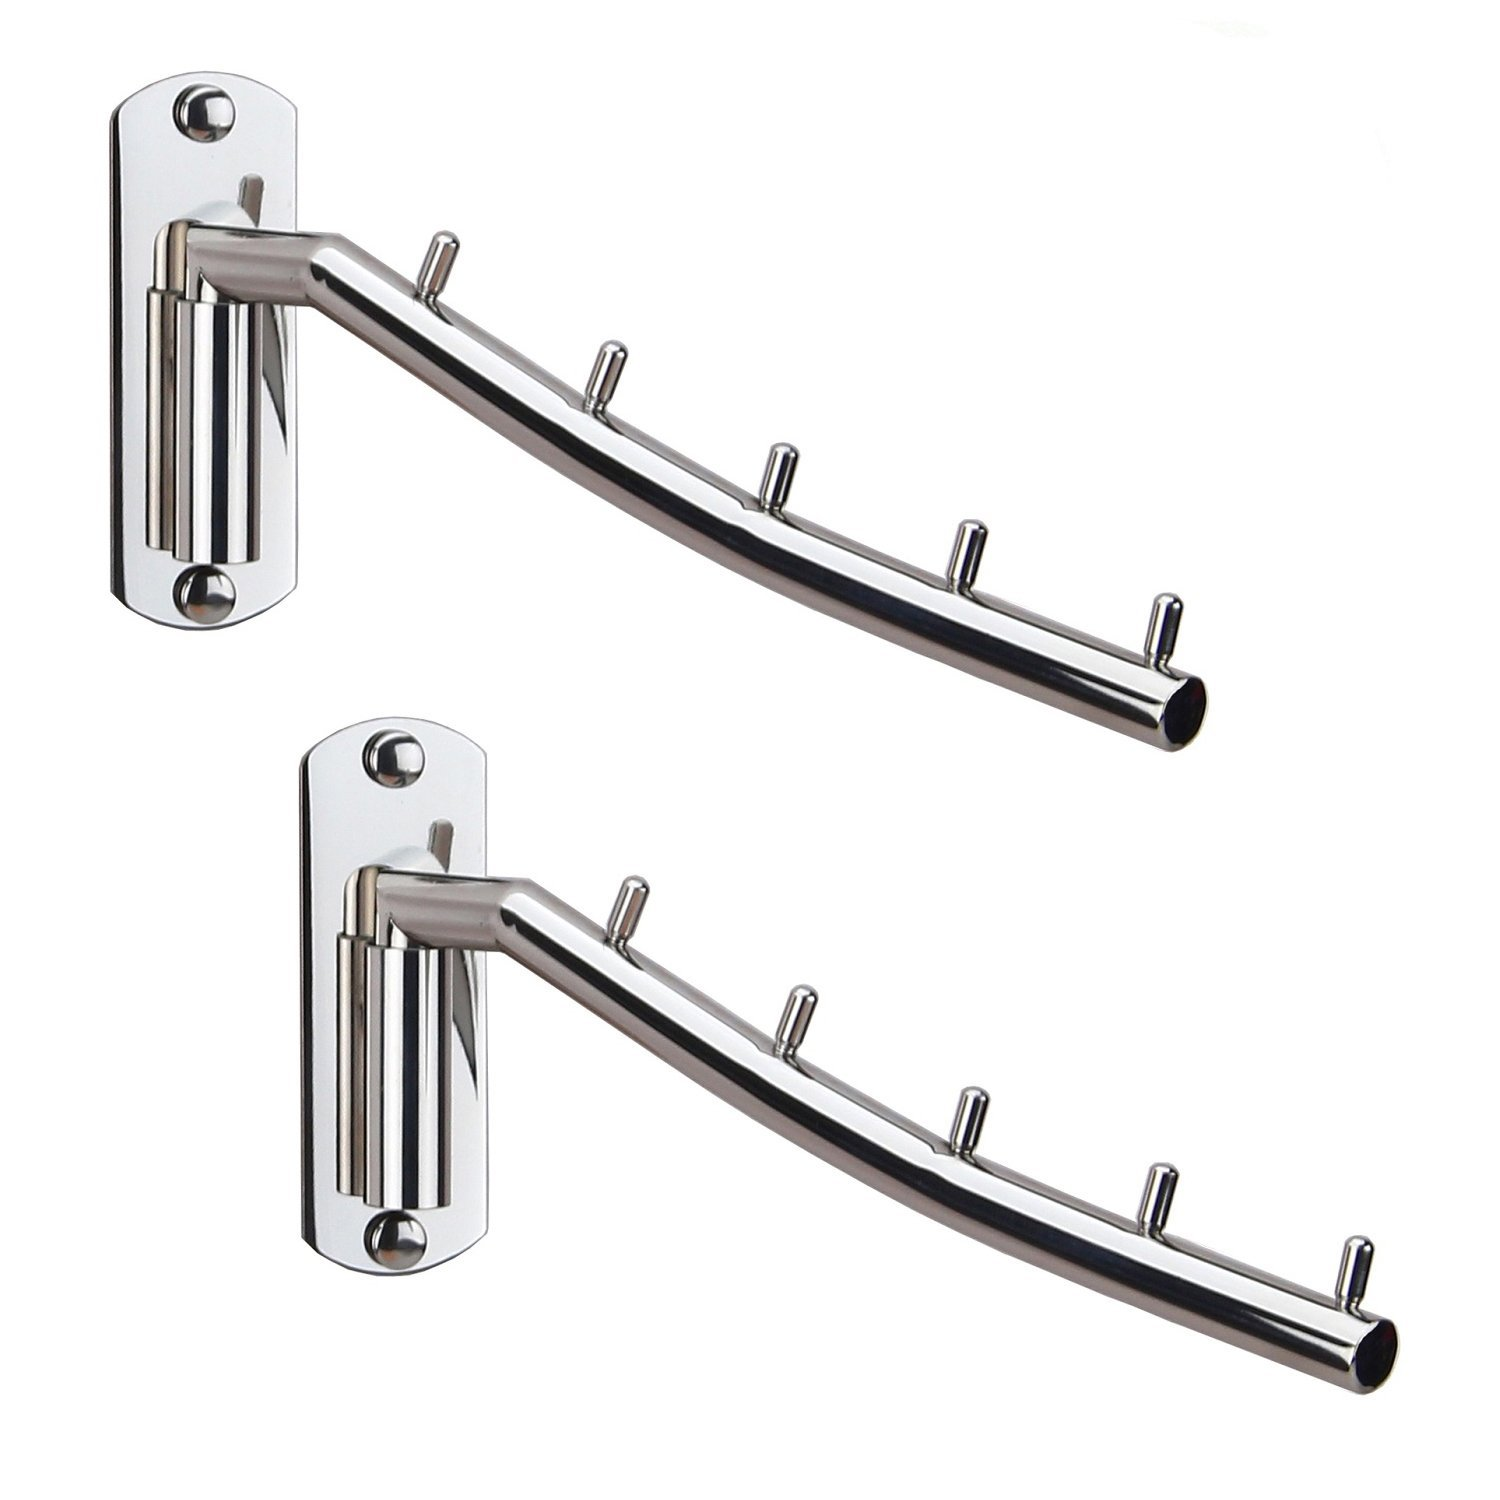 Folding Wall Mounted Clothes Hanger Rack Wall Clothes Hanger Stainless Steel Swing Arm Wall Mount Clothes Rack Heavy Duty Drying Coat Hook Clothing Hanging System Closet Storage Organizer - 2Pack by Zivisk